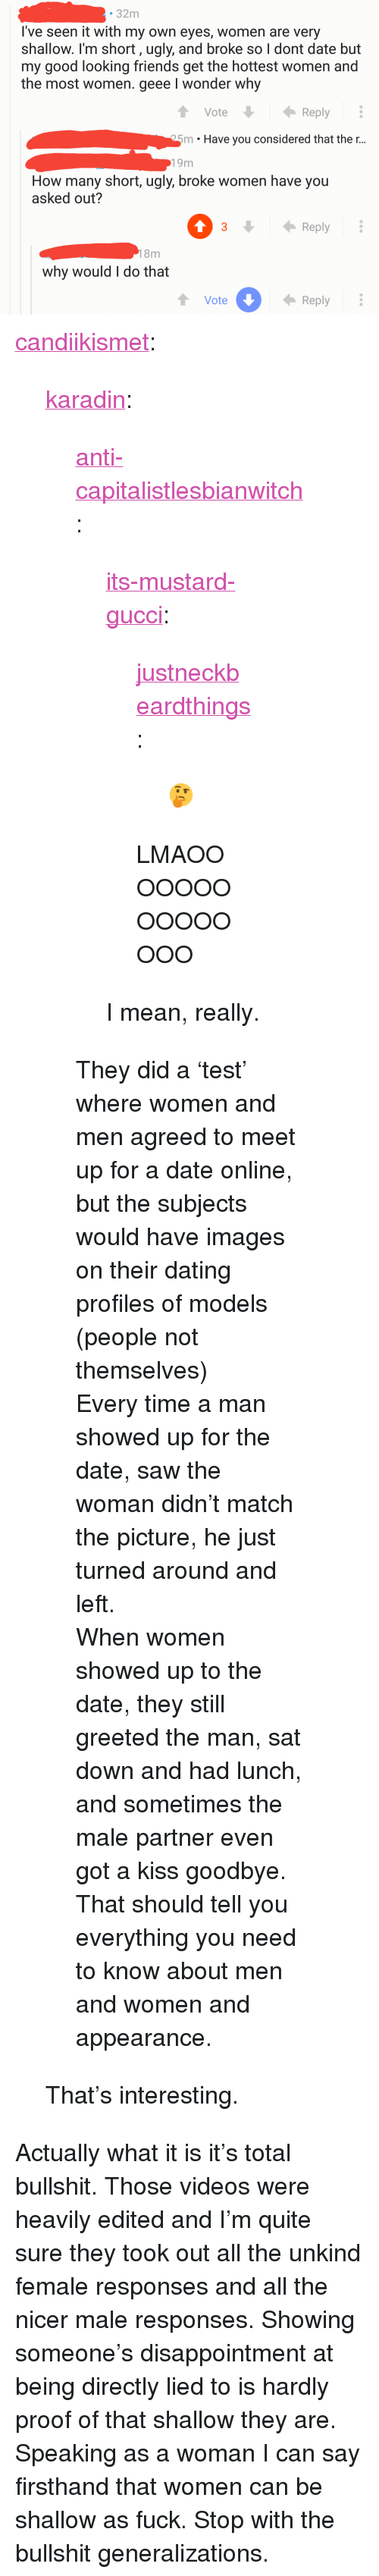 """Dating, Friends, and Gucci: 32m  I've seen it with my own eyes, women are very  shallow. I'm short, ugly, and broke so l dont date but  my good looking friends get the hottest women and  the most women. geee I wonder why  VoteReply  25m . Have you considered that the r..  19m  How many short, ugly, broke women have you  asked out?  3Reply  8m  why would I do that  Vote  Reply <p><a href=""""http://candiikismet.tumblr.com/post/161964122616/karadin-anti-capitalistlesbianwitch"""" class=""""tumblr_blog"""">candiikismet</a>:</p>  <blockquote><p><a href=""""http://karadin.tumblr.com/post/161962781063/anti-capitalistlesbianwitch-its-mustard-gucci"""" class=""""tumblr_blog"""">karadin</a>:</p>  <blockquote><p><a href=""""https://anti-capitalistlesbianwitch.tumblr.com/post/161962201901/its-mustard-gucci-justneckbeardthings"""" class=""""tumblr_blog"""">anti-capitalistlesbianwitch</a>:</p><blockquote> <p><a href=""""http://its-mustard-gucci.tumblr.com/post/161911741753/justneckbeardthings-lmaooooooooooooooo"""" class=""""tumblr_blog"""">its-mustard-gucci</a>:</p> <blockquote> <p><a href=""""http://justneckbeardthings.tumblr.com/post/161887312339"""" class=""""tumblr_blog"""">justneckbeardthings</a>:</p> <blockquote><p>🤔</p></blockquote>  <p>LMAOOOOOOOOOOOOOOO</p> </blockquote> <p>I mean, really.</p> </blockquote> <p>They did a'test' where women and men agreed to meet up for a date online, but the subjects would have images on their dating profiles of models (people not themselves)</p><p>Every time a man showed up for the date, saw the woman didn't match the picture, he just turned around and left.</p><p>When women showed up to the date, they still greeted the man, sat down and had lunch, and sometimes the male partner even got a kiss goodbye. That should tell you everything you need to know about men and women and appearance.</p></blockquote>  <p>That's interesting.</p></blockquote>  <p>Actually what it is it's total bullshit. Those videos were heavily edited and I'm quite sure they took out all the unkind female responses and all th"""